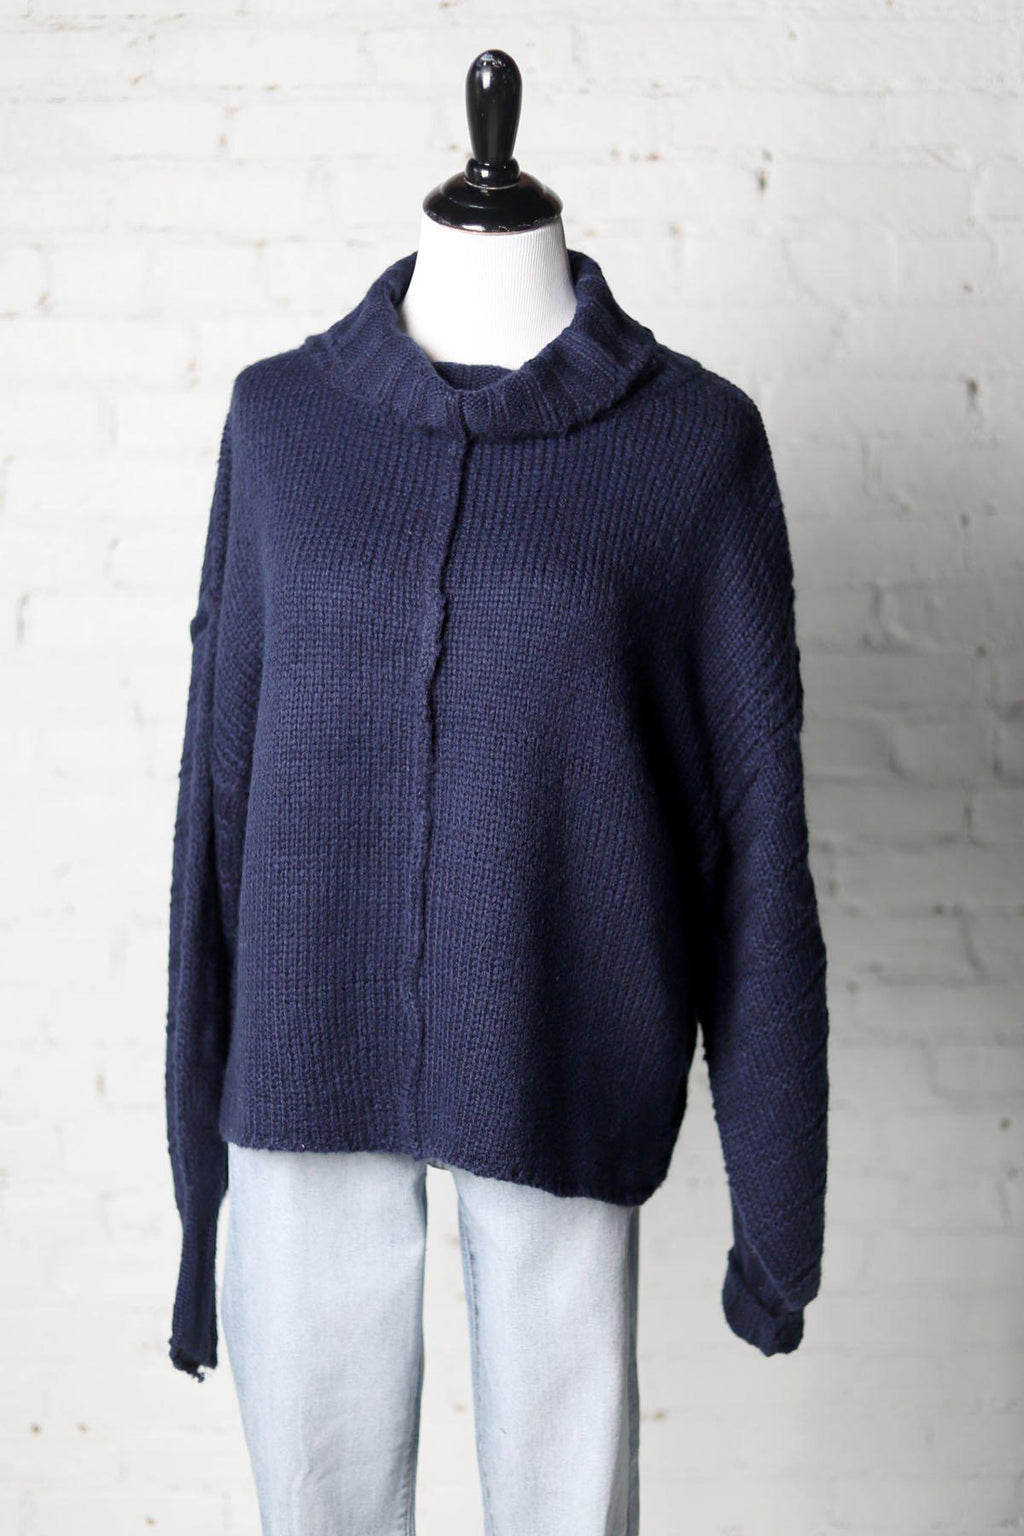 Cardinal Sun Washed MN Hat - Gallery 512 Boutique